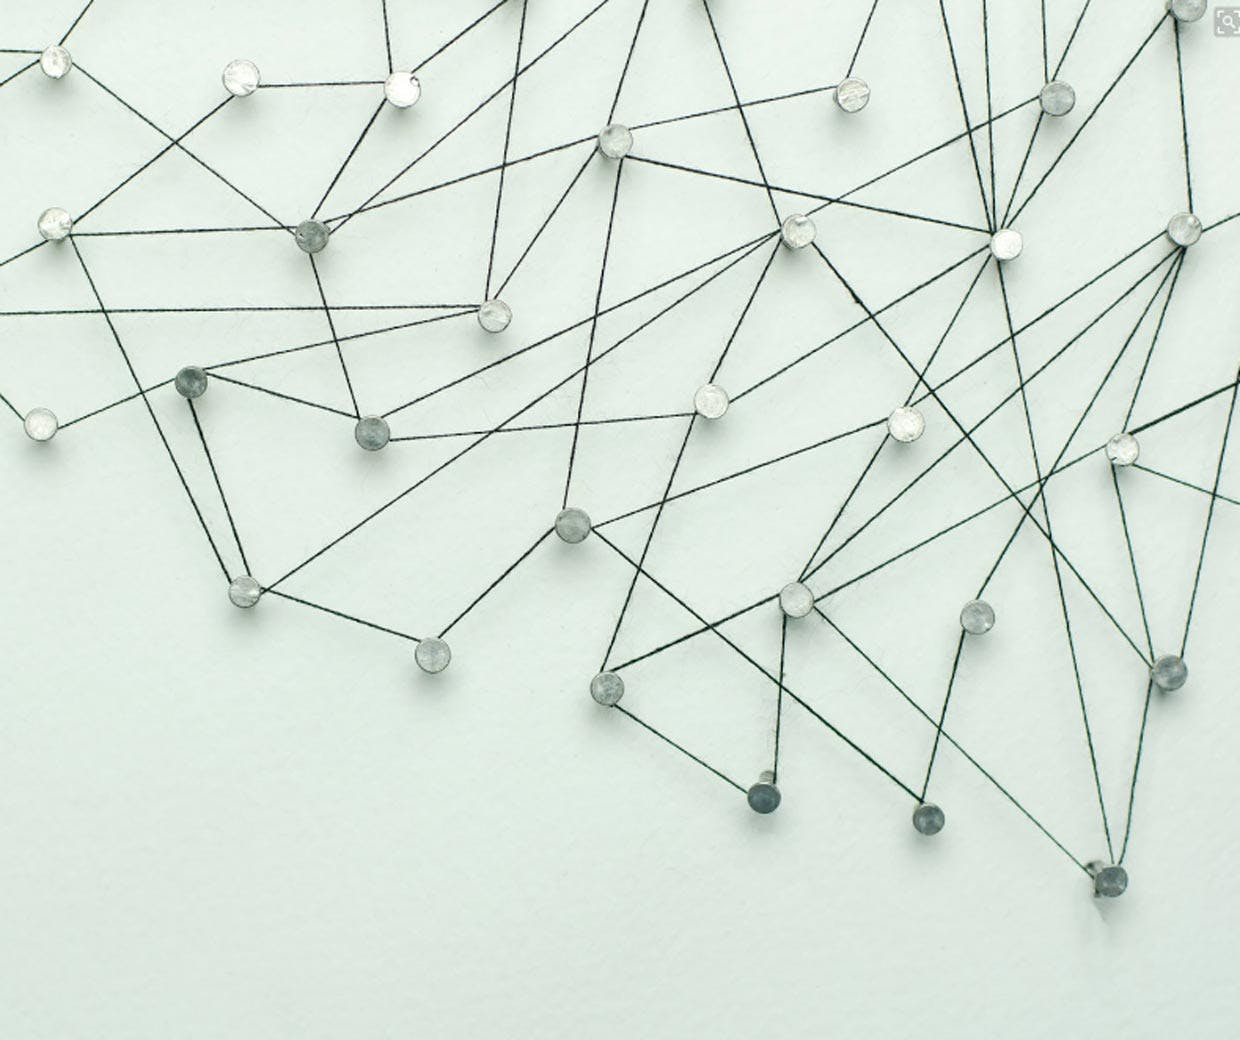 The new networking: How marketers connect in 2018